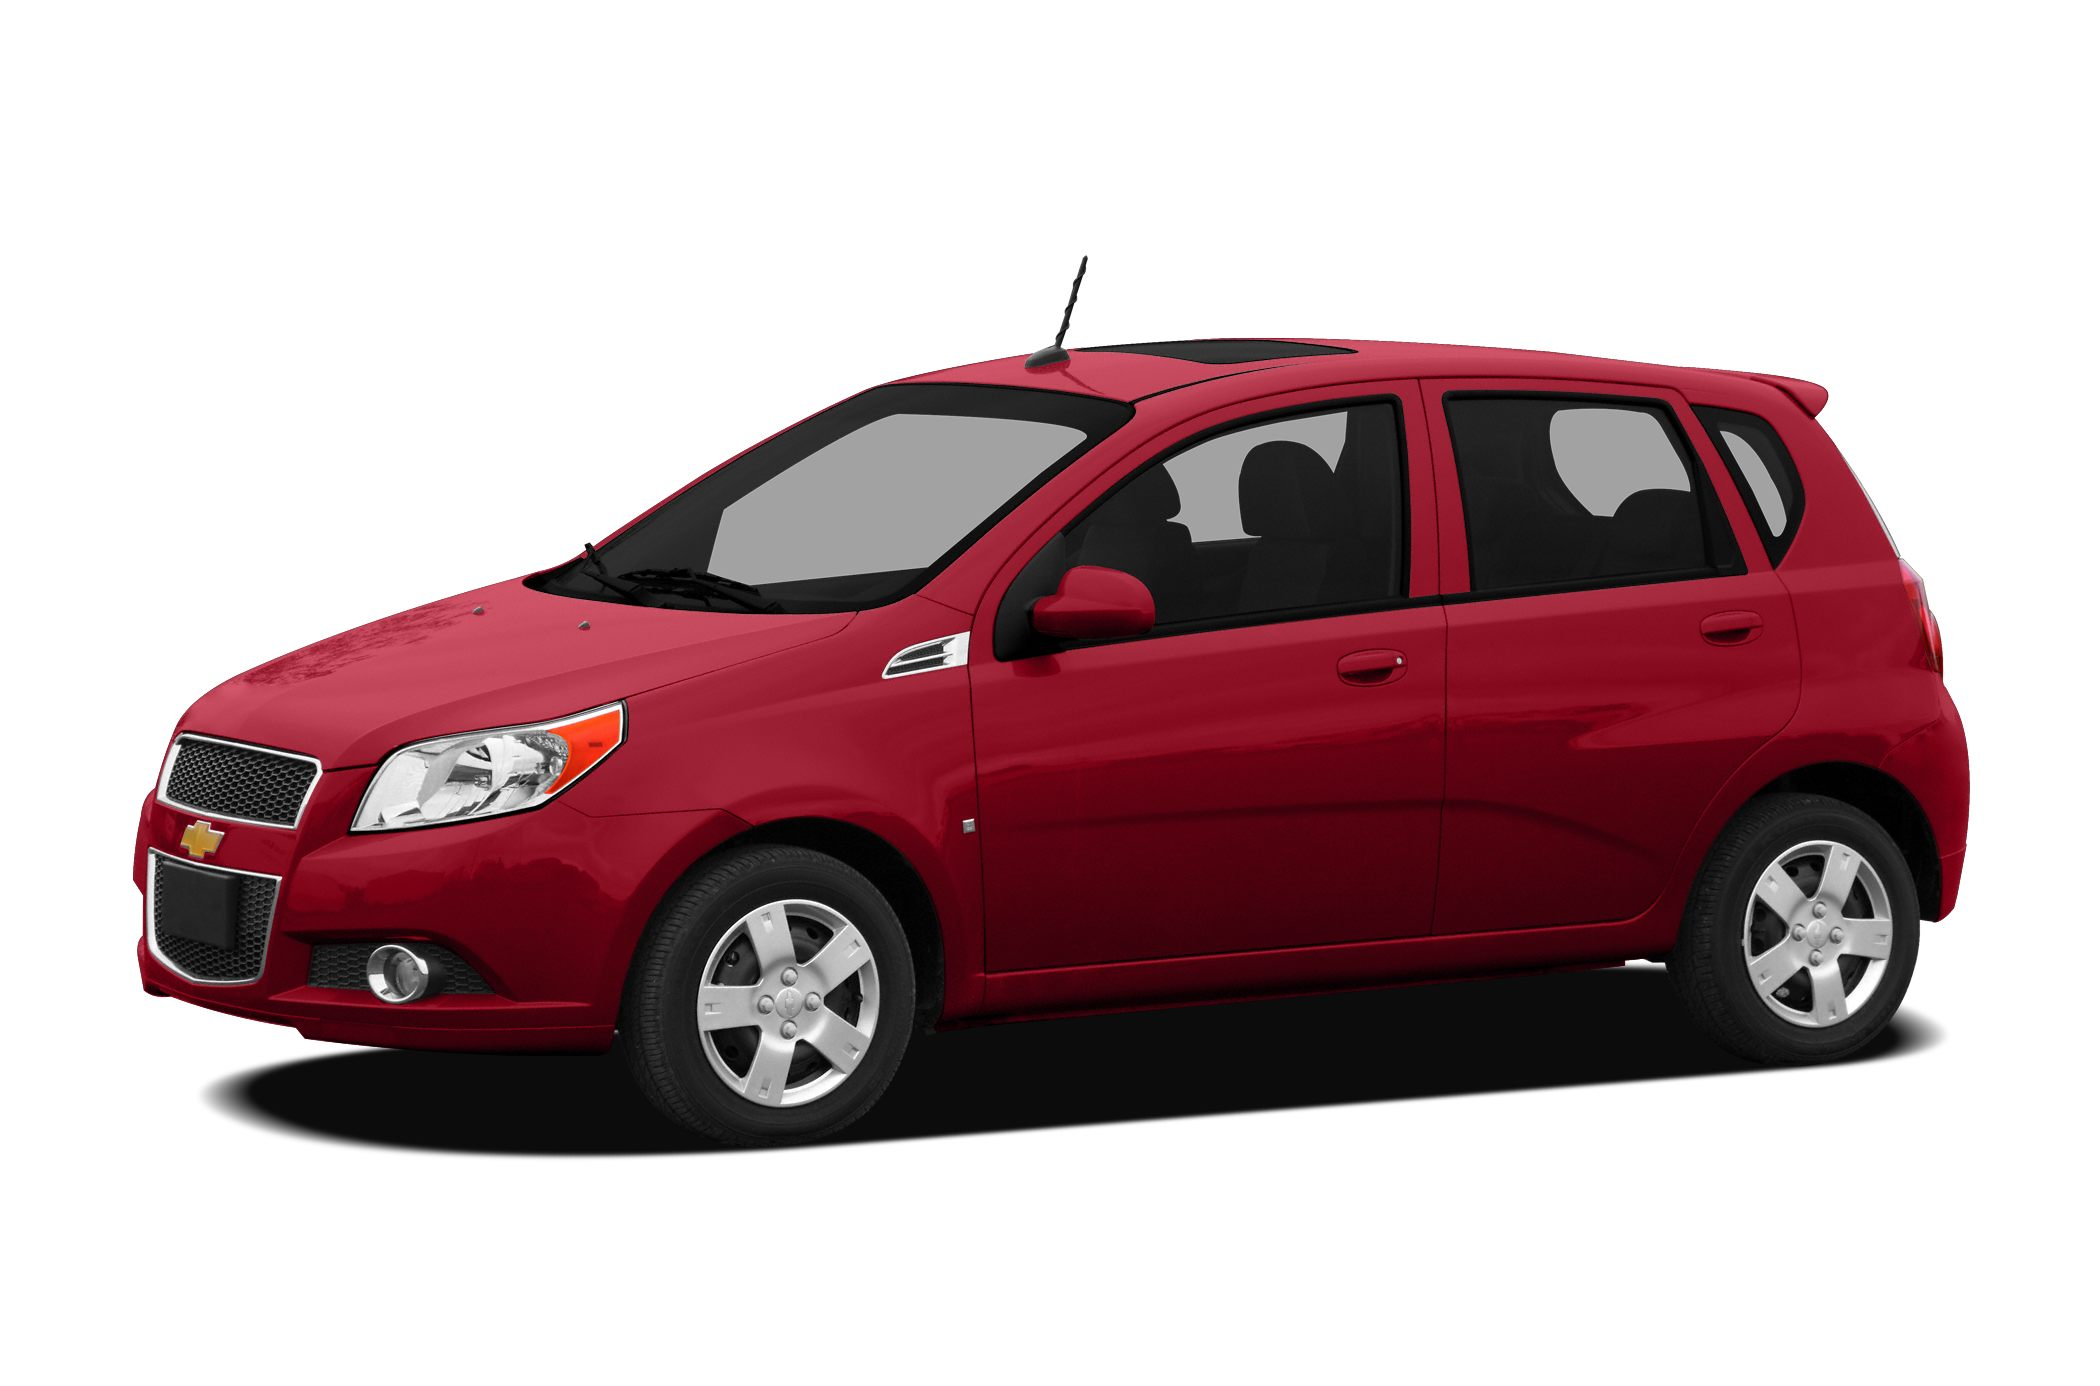 2010 Chevrolet Aveo Aveo 5 Lt W 1lt 4dr Hatchback Specs And Prices